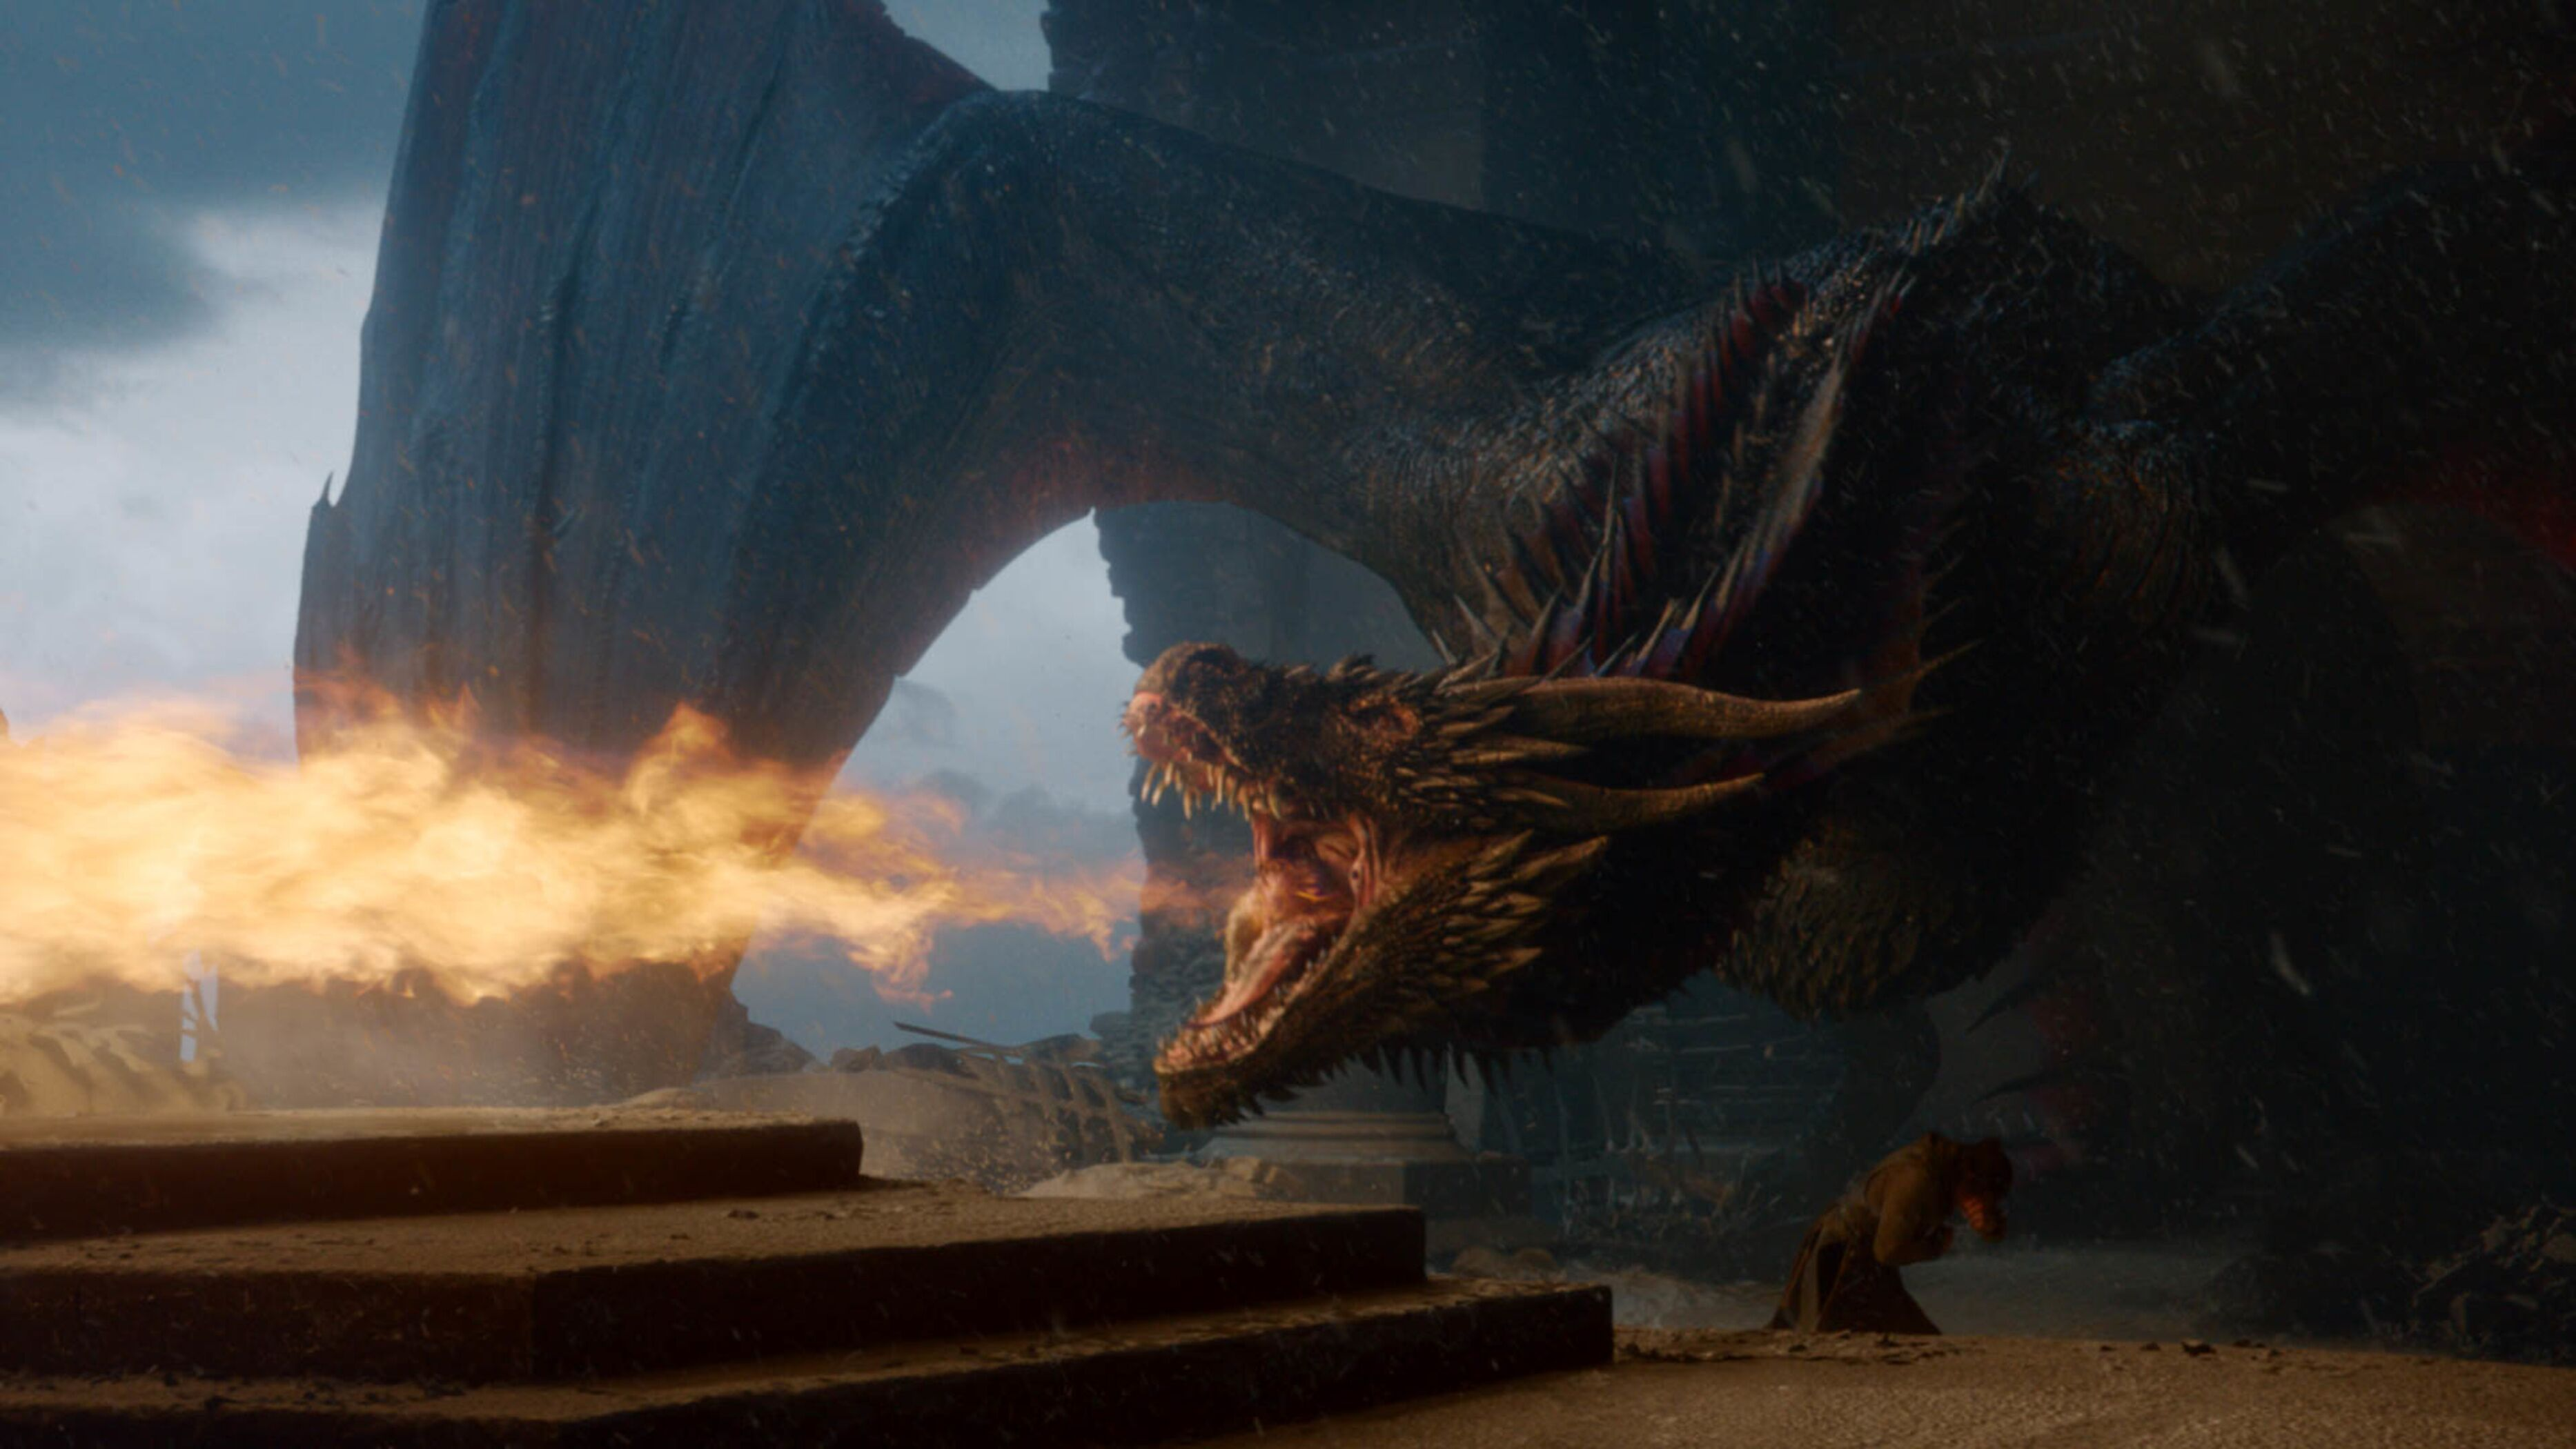 Game of Thrones finale delayed in China due to trade war with US?